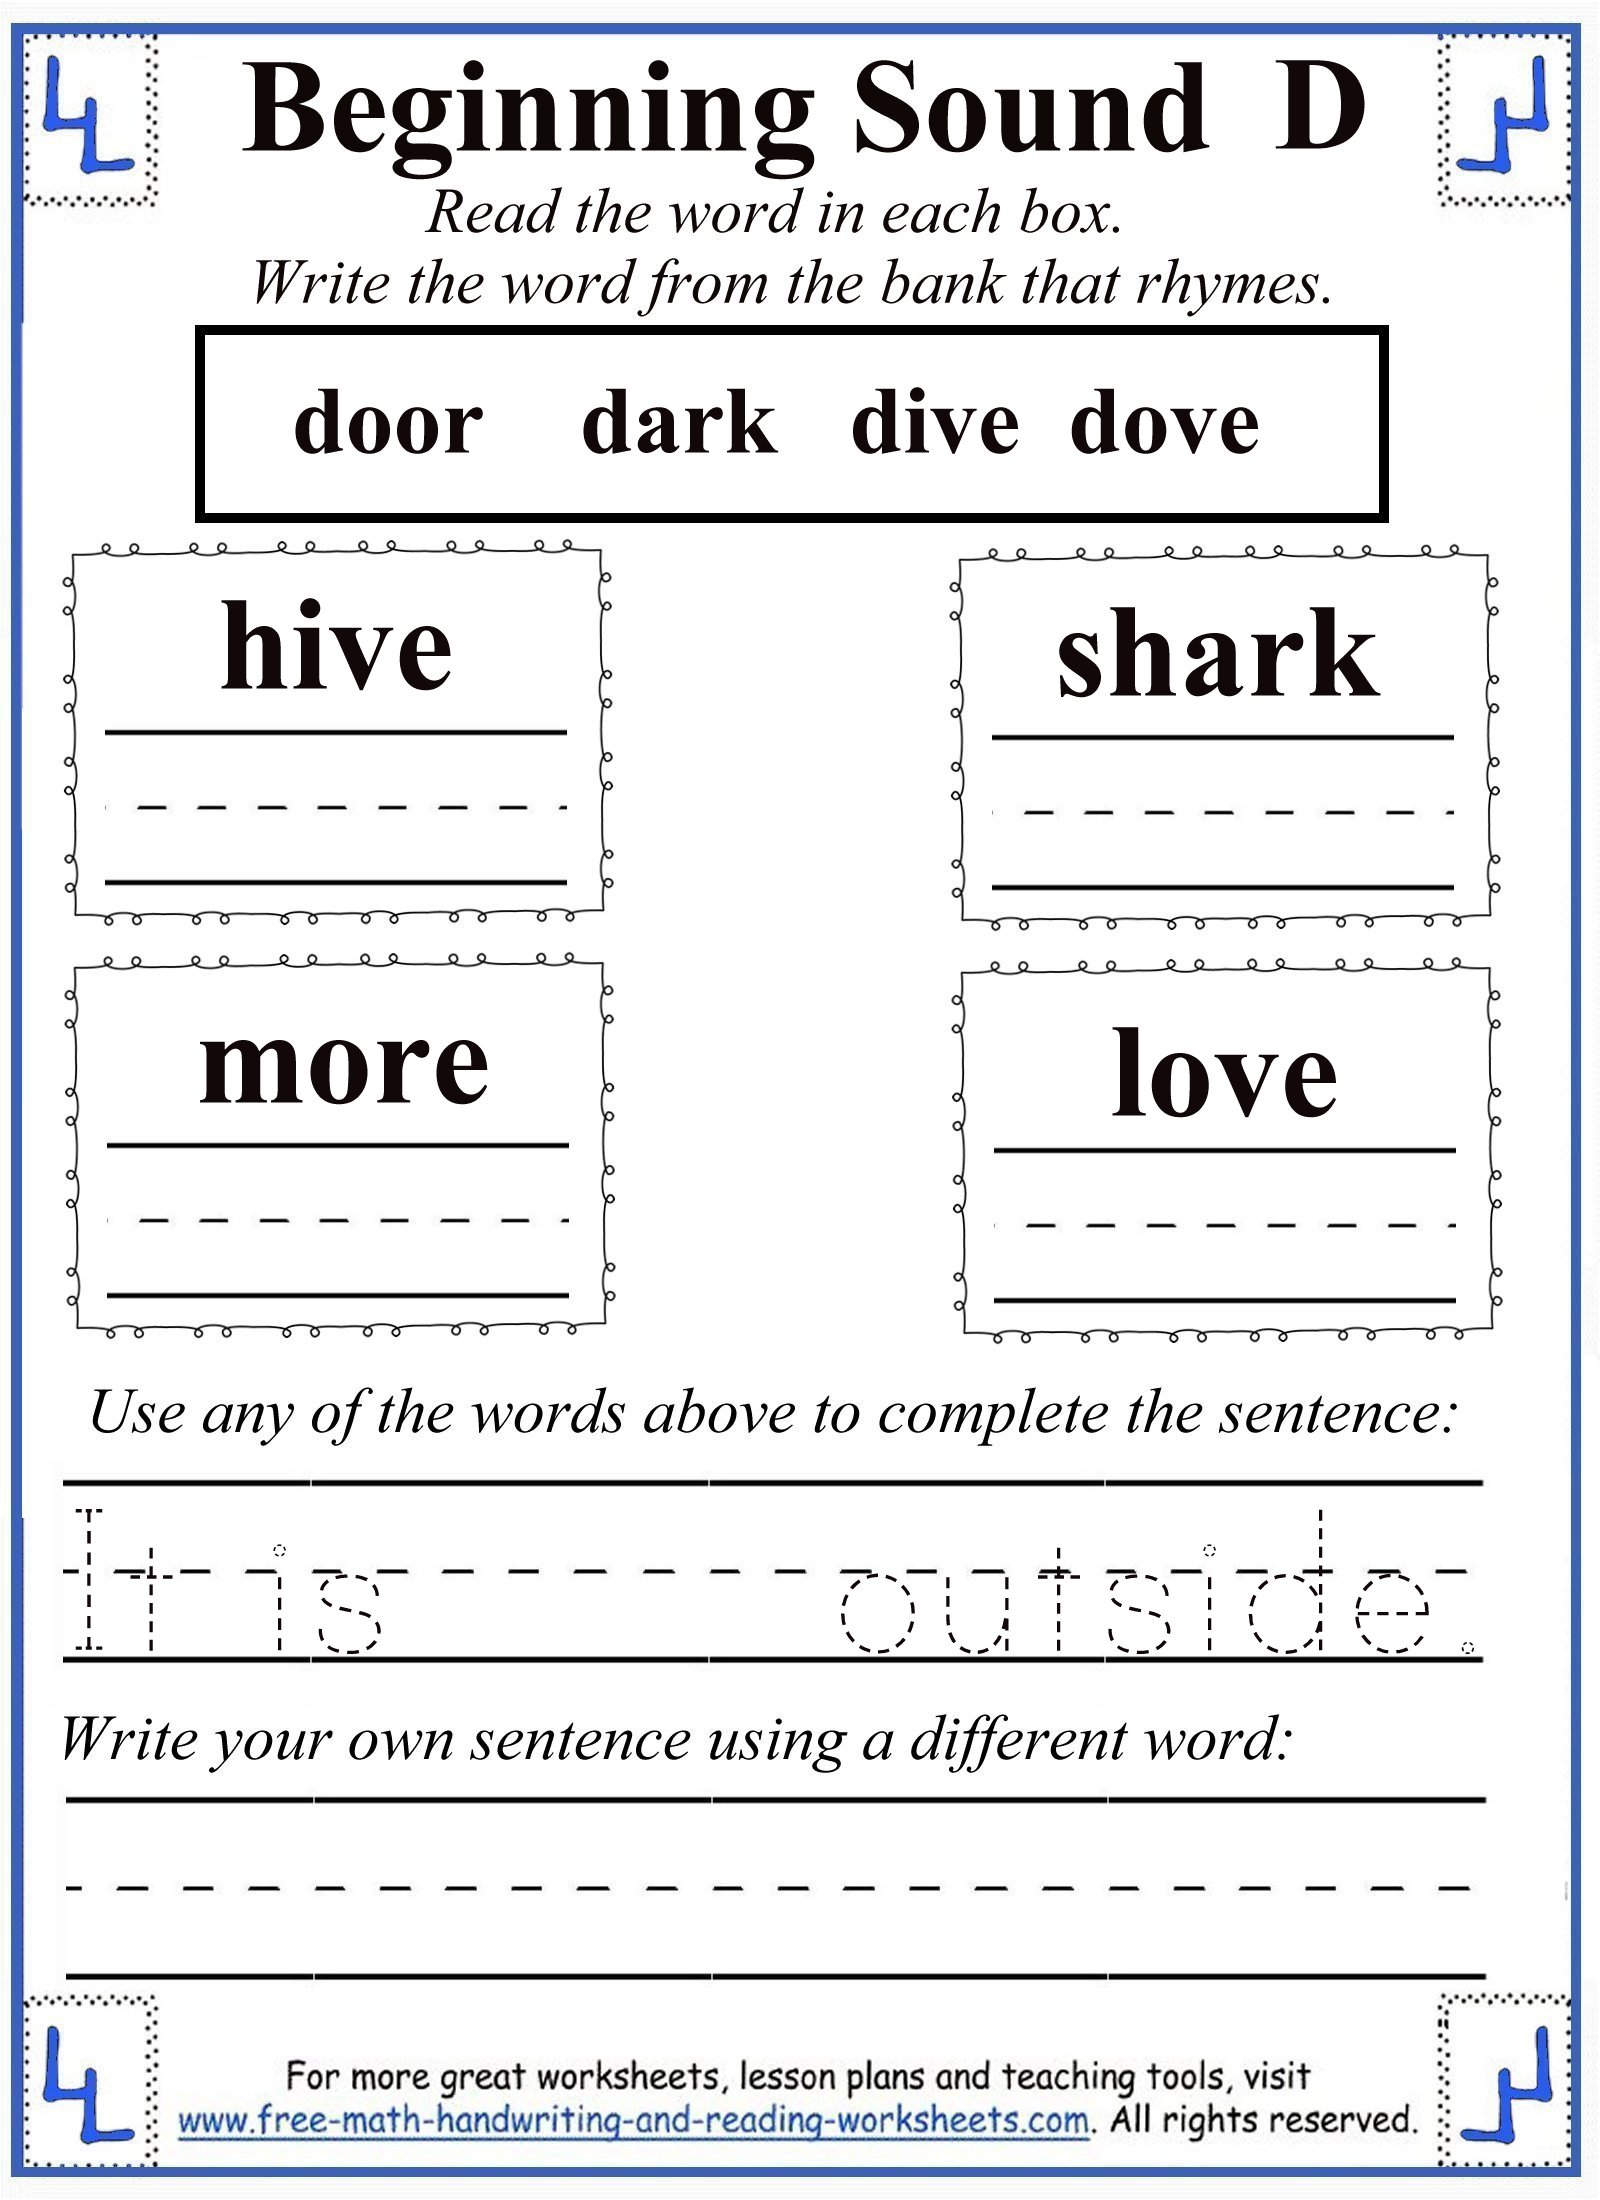 beginning sound d rhyming activity sheet